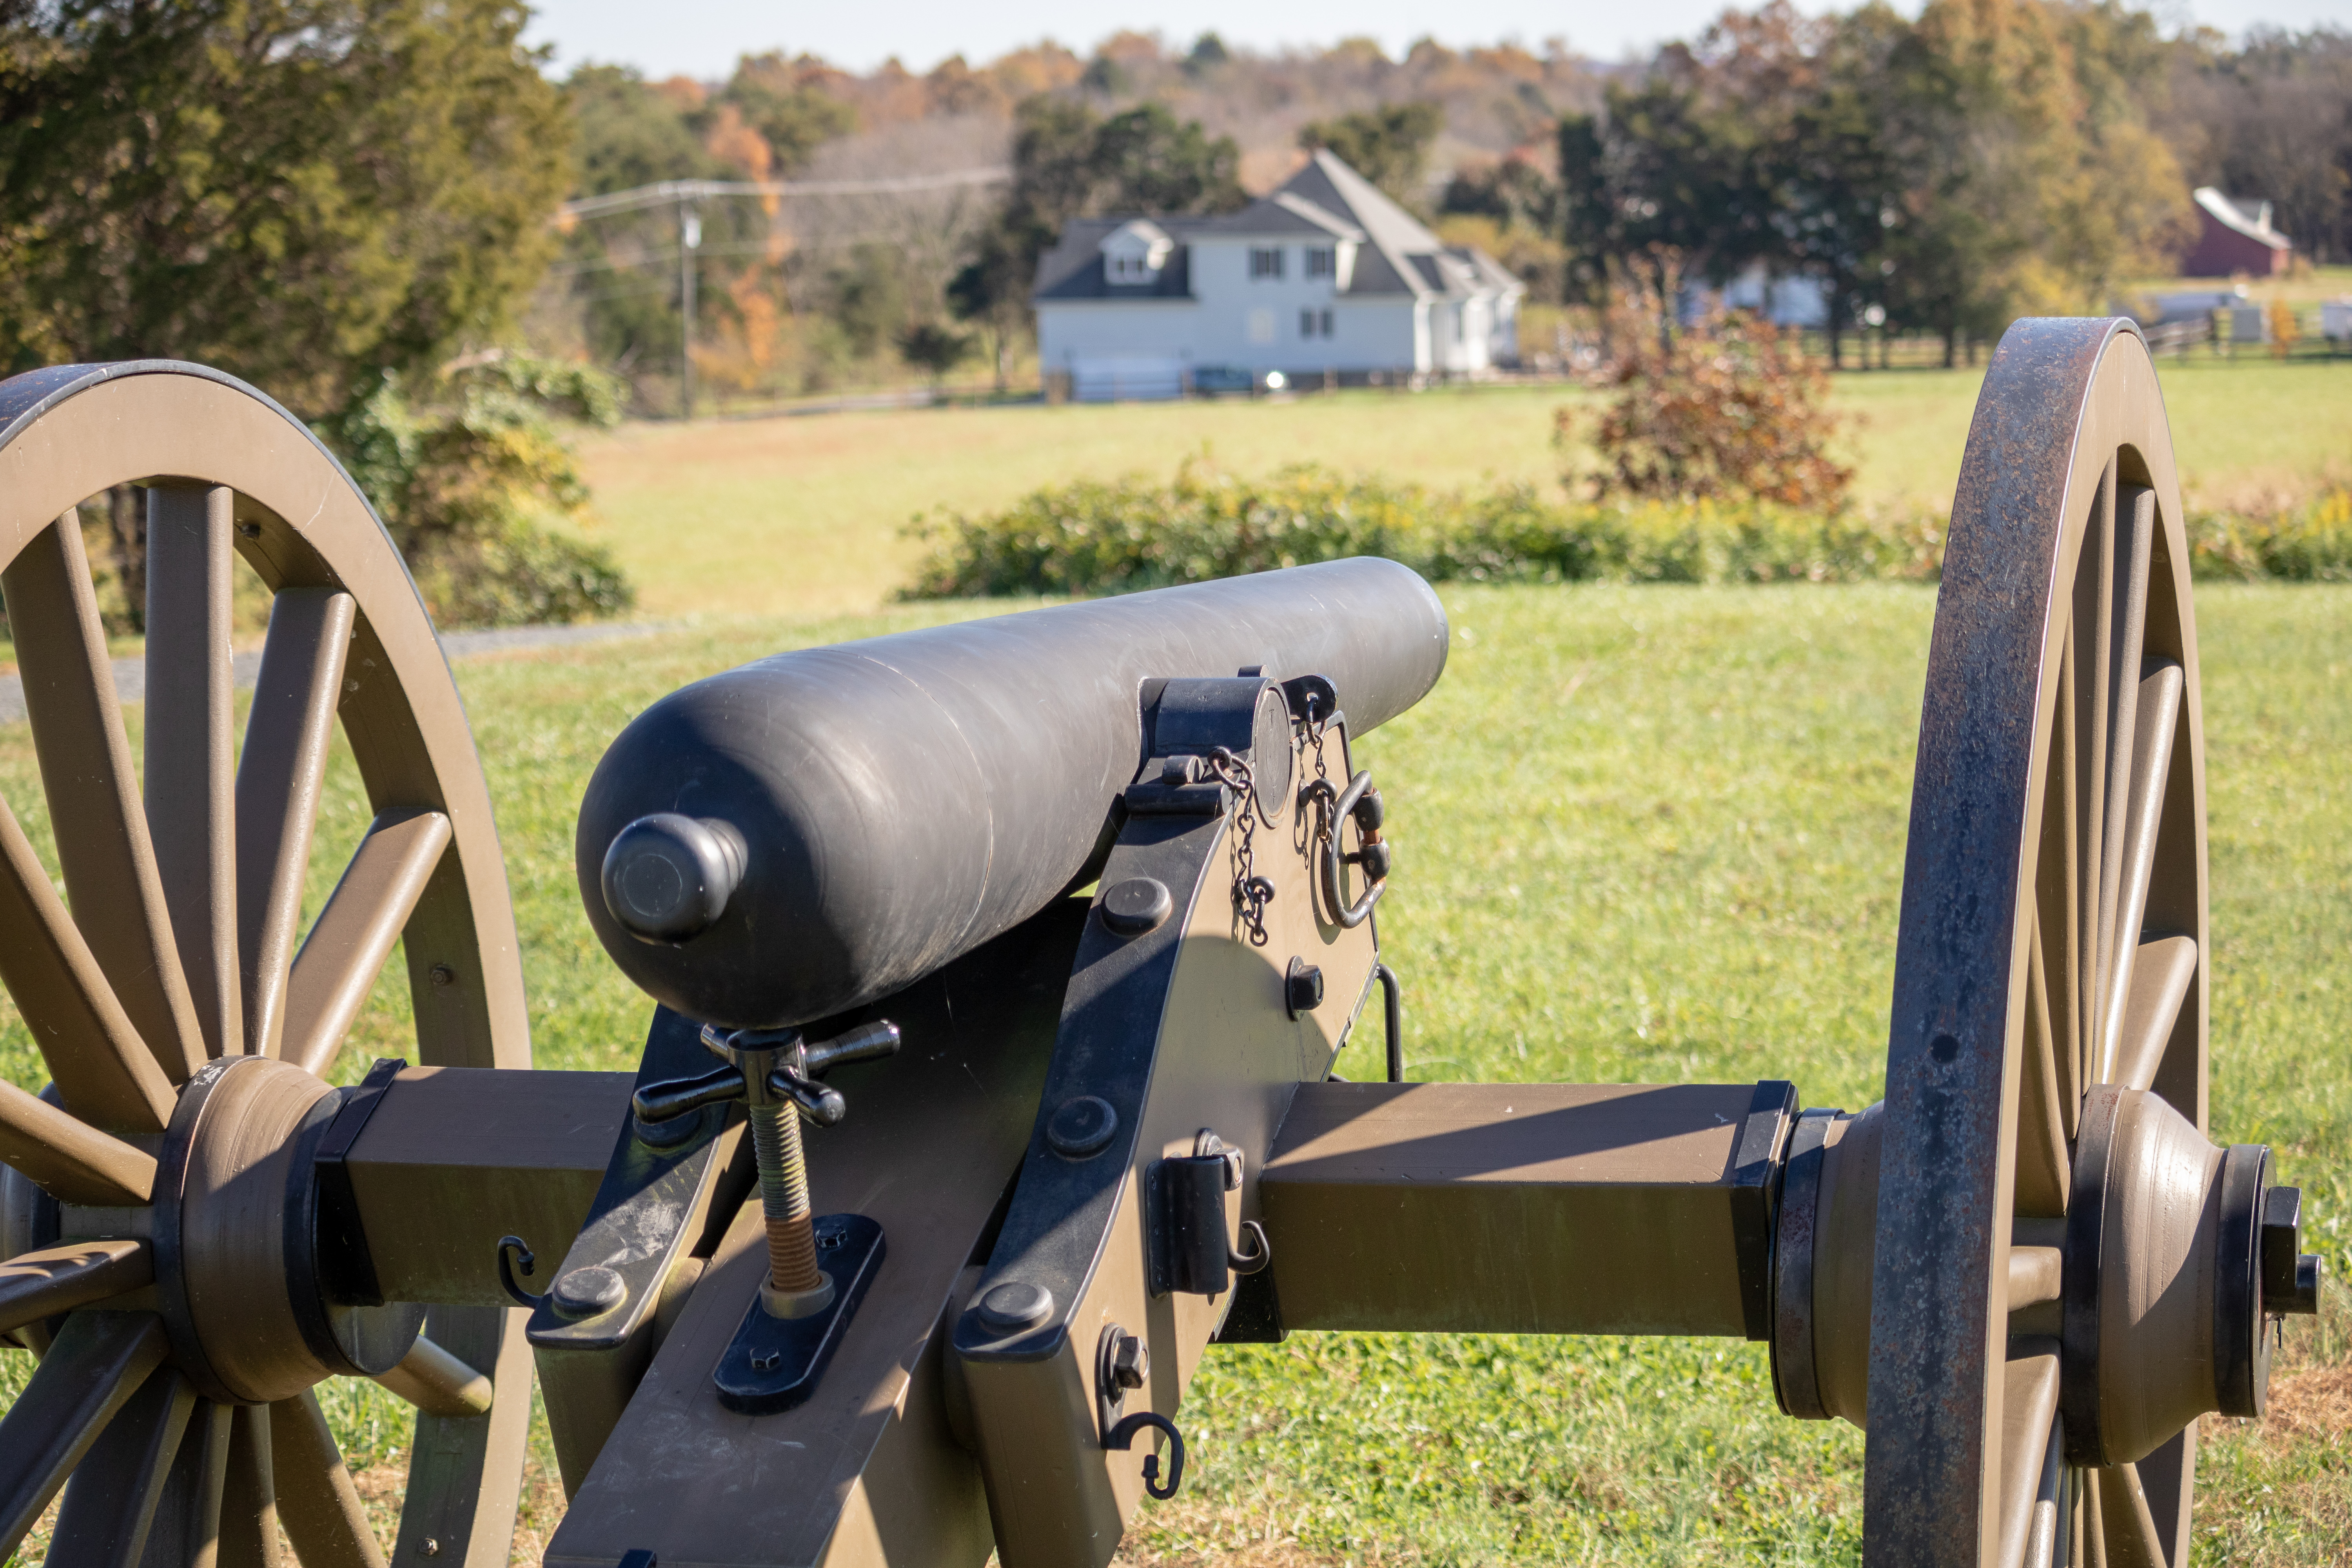 Picture of a civil war cannon taking aim in a field.